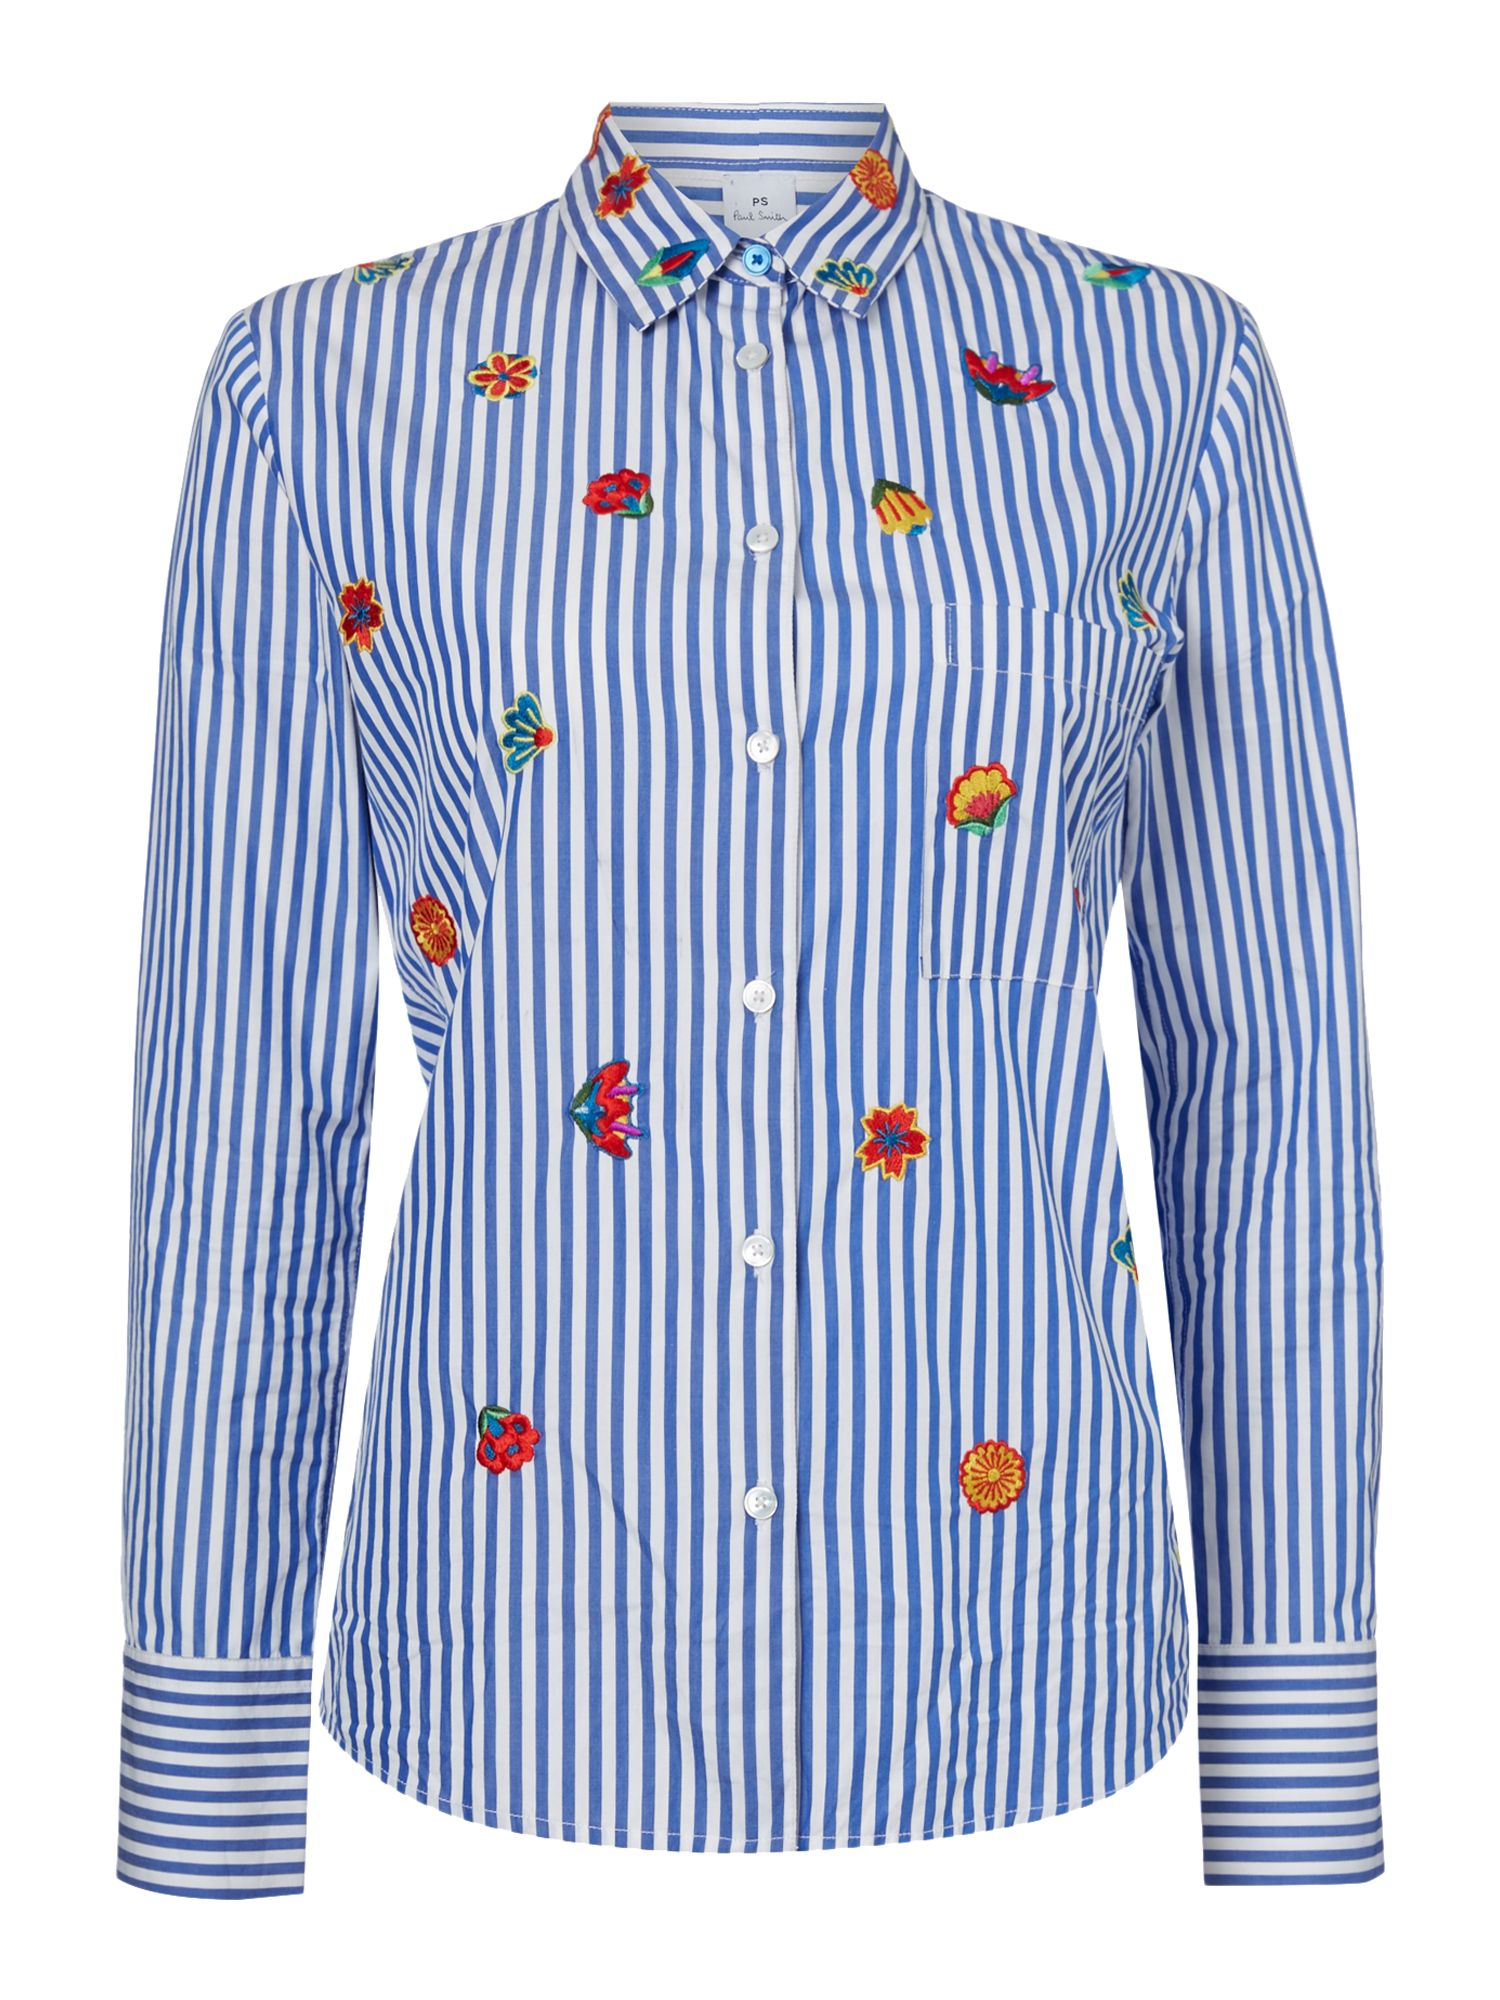 PS By Paul Smith Stripe embroidered shirt, Multi-Coloured